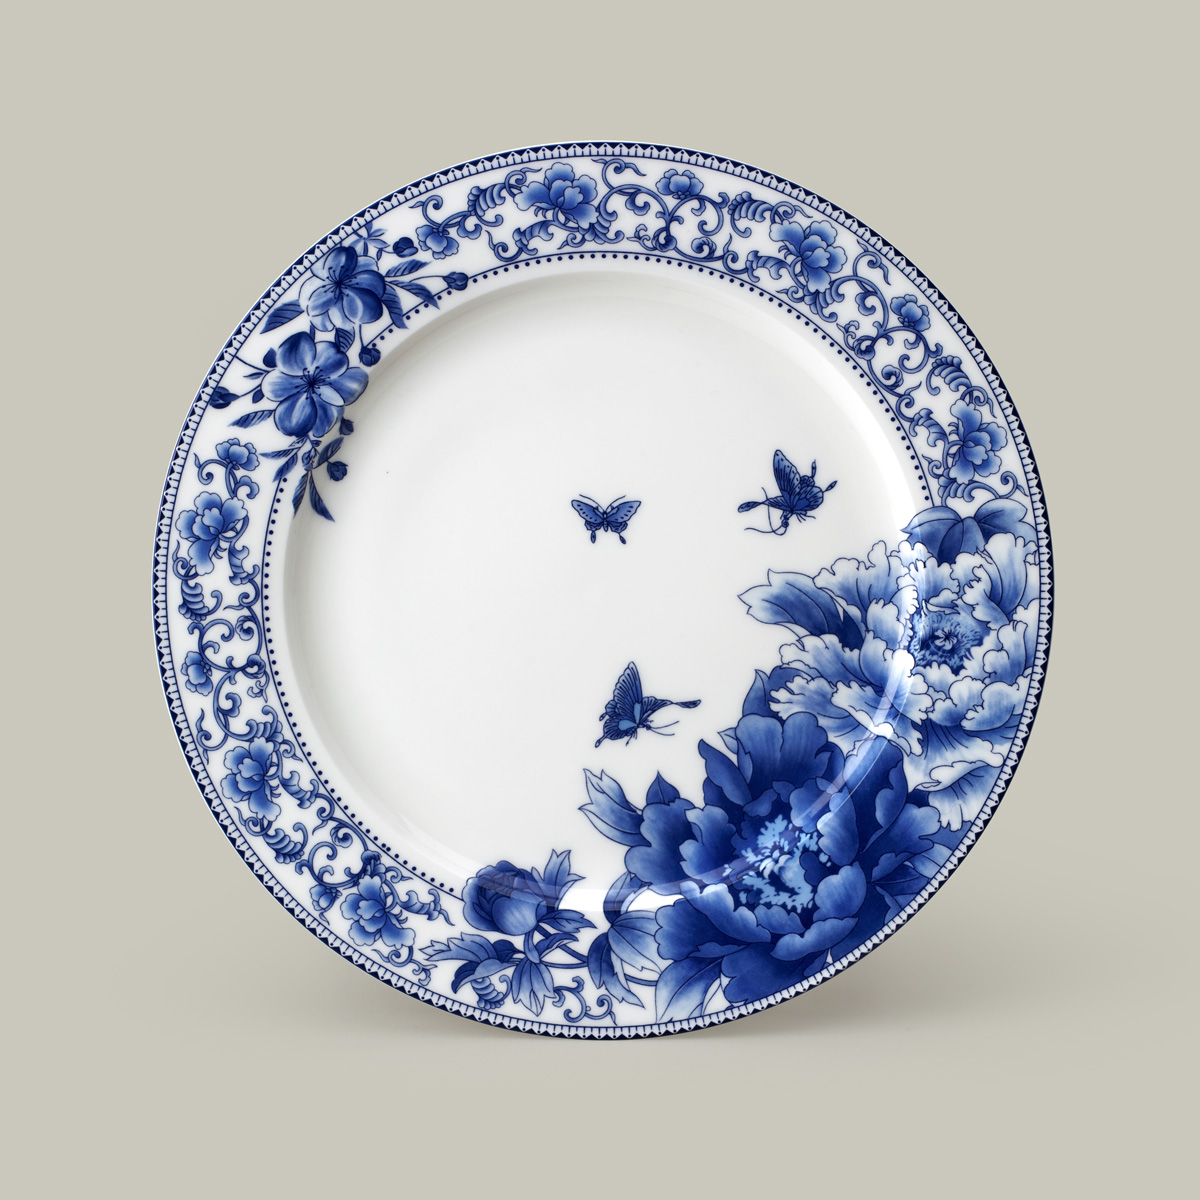 Get Quotations · 10 inch large blue and white glazed bone china plate steak plate flat plate western dish